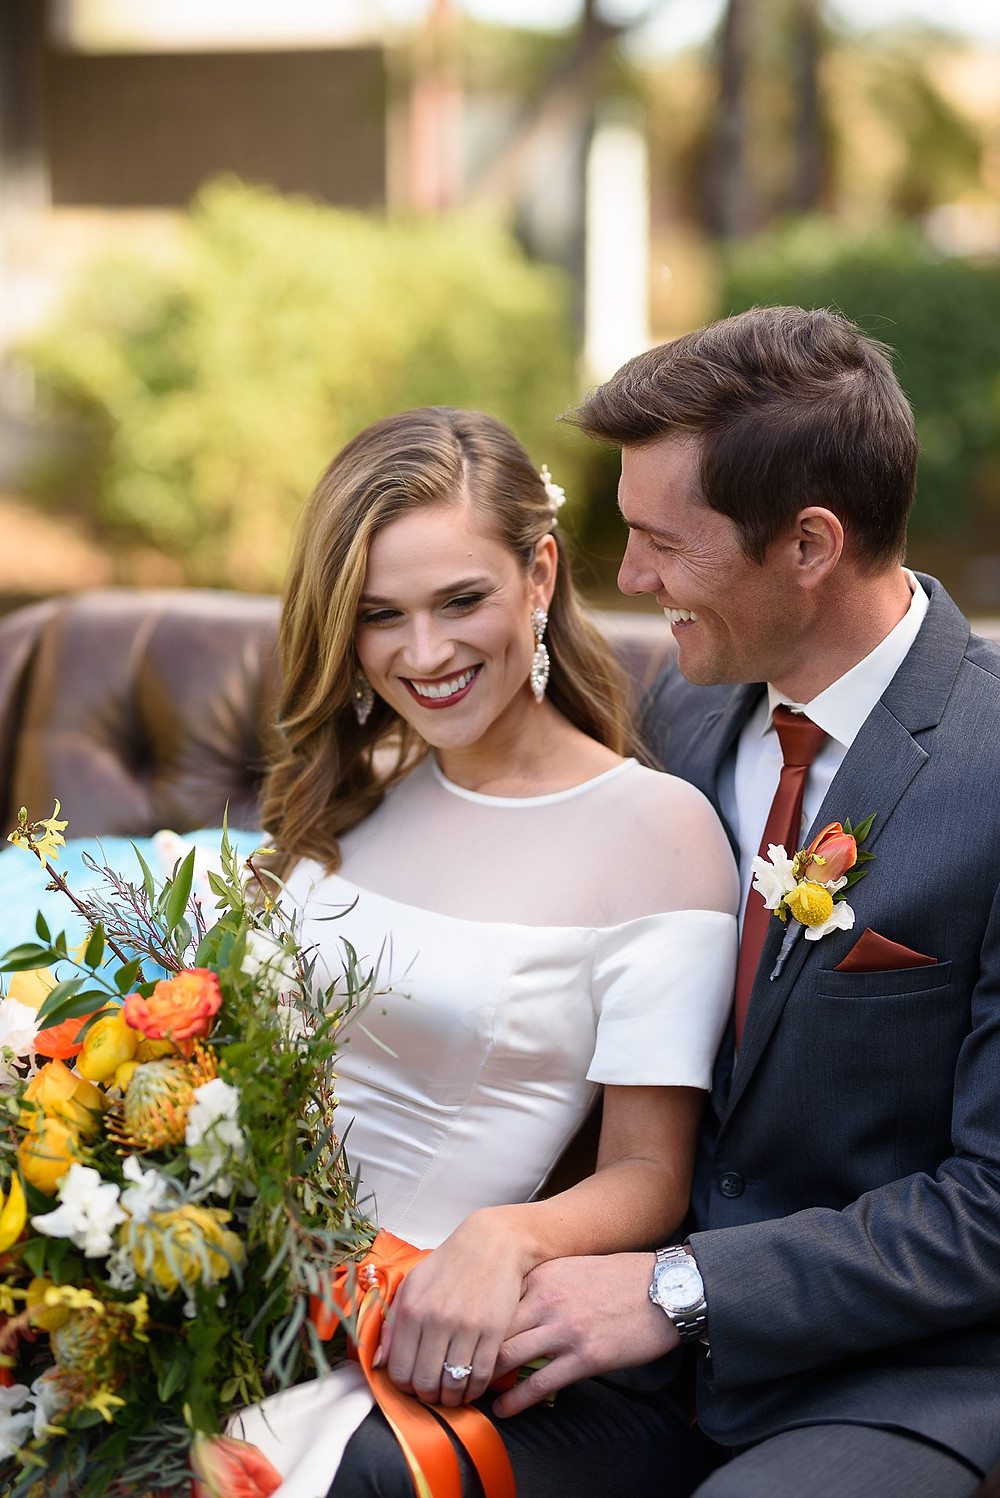 Bride and groom sitting outside on a brown leather couch while laughing